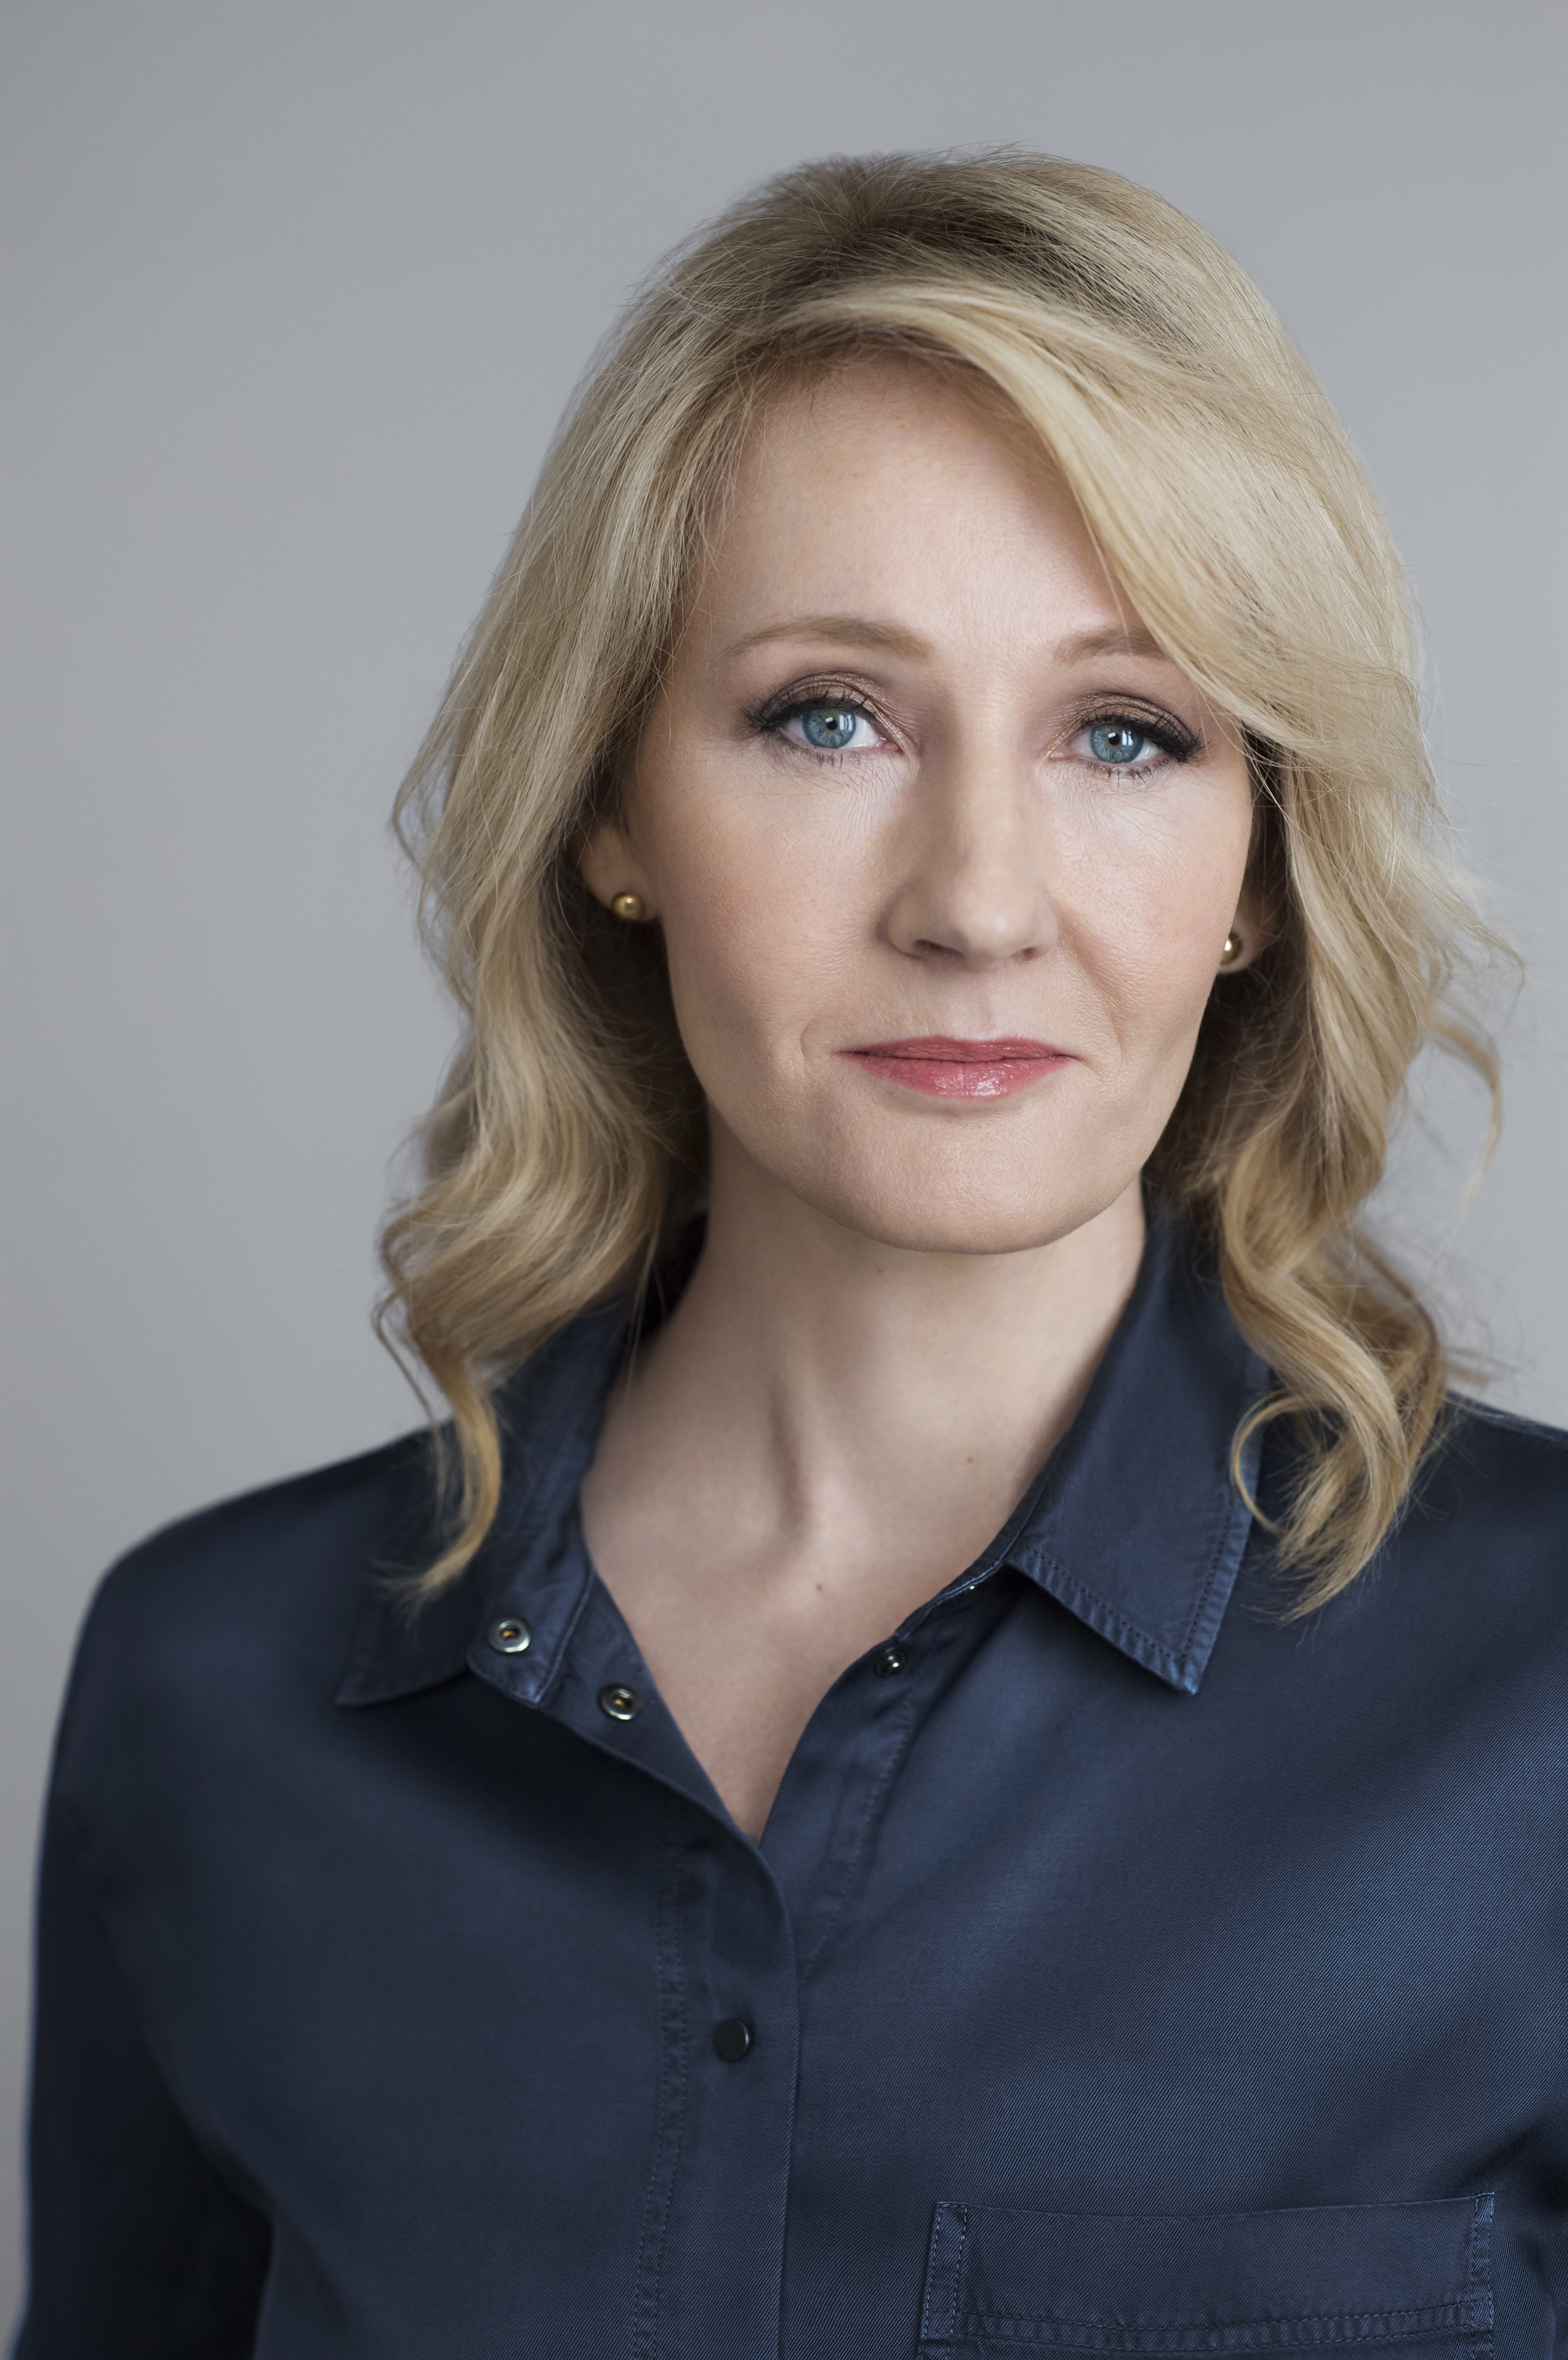 J.K. Rowling - First person to become a billionaire through writing books